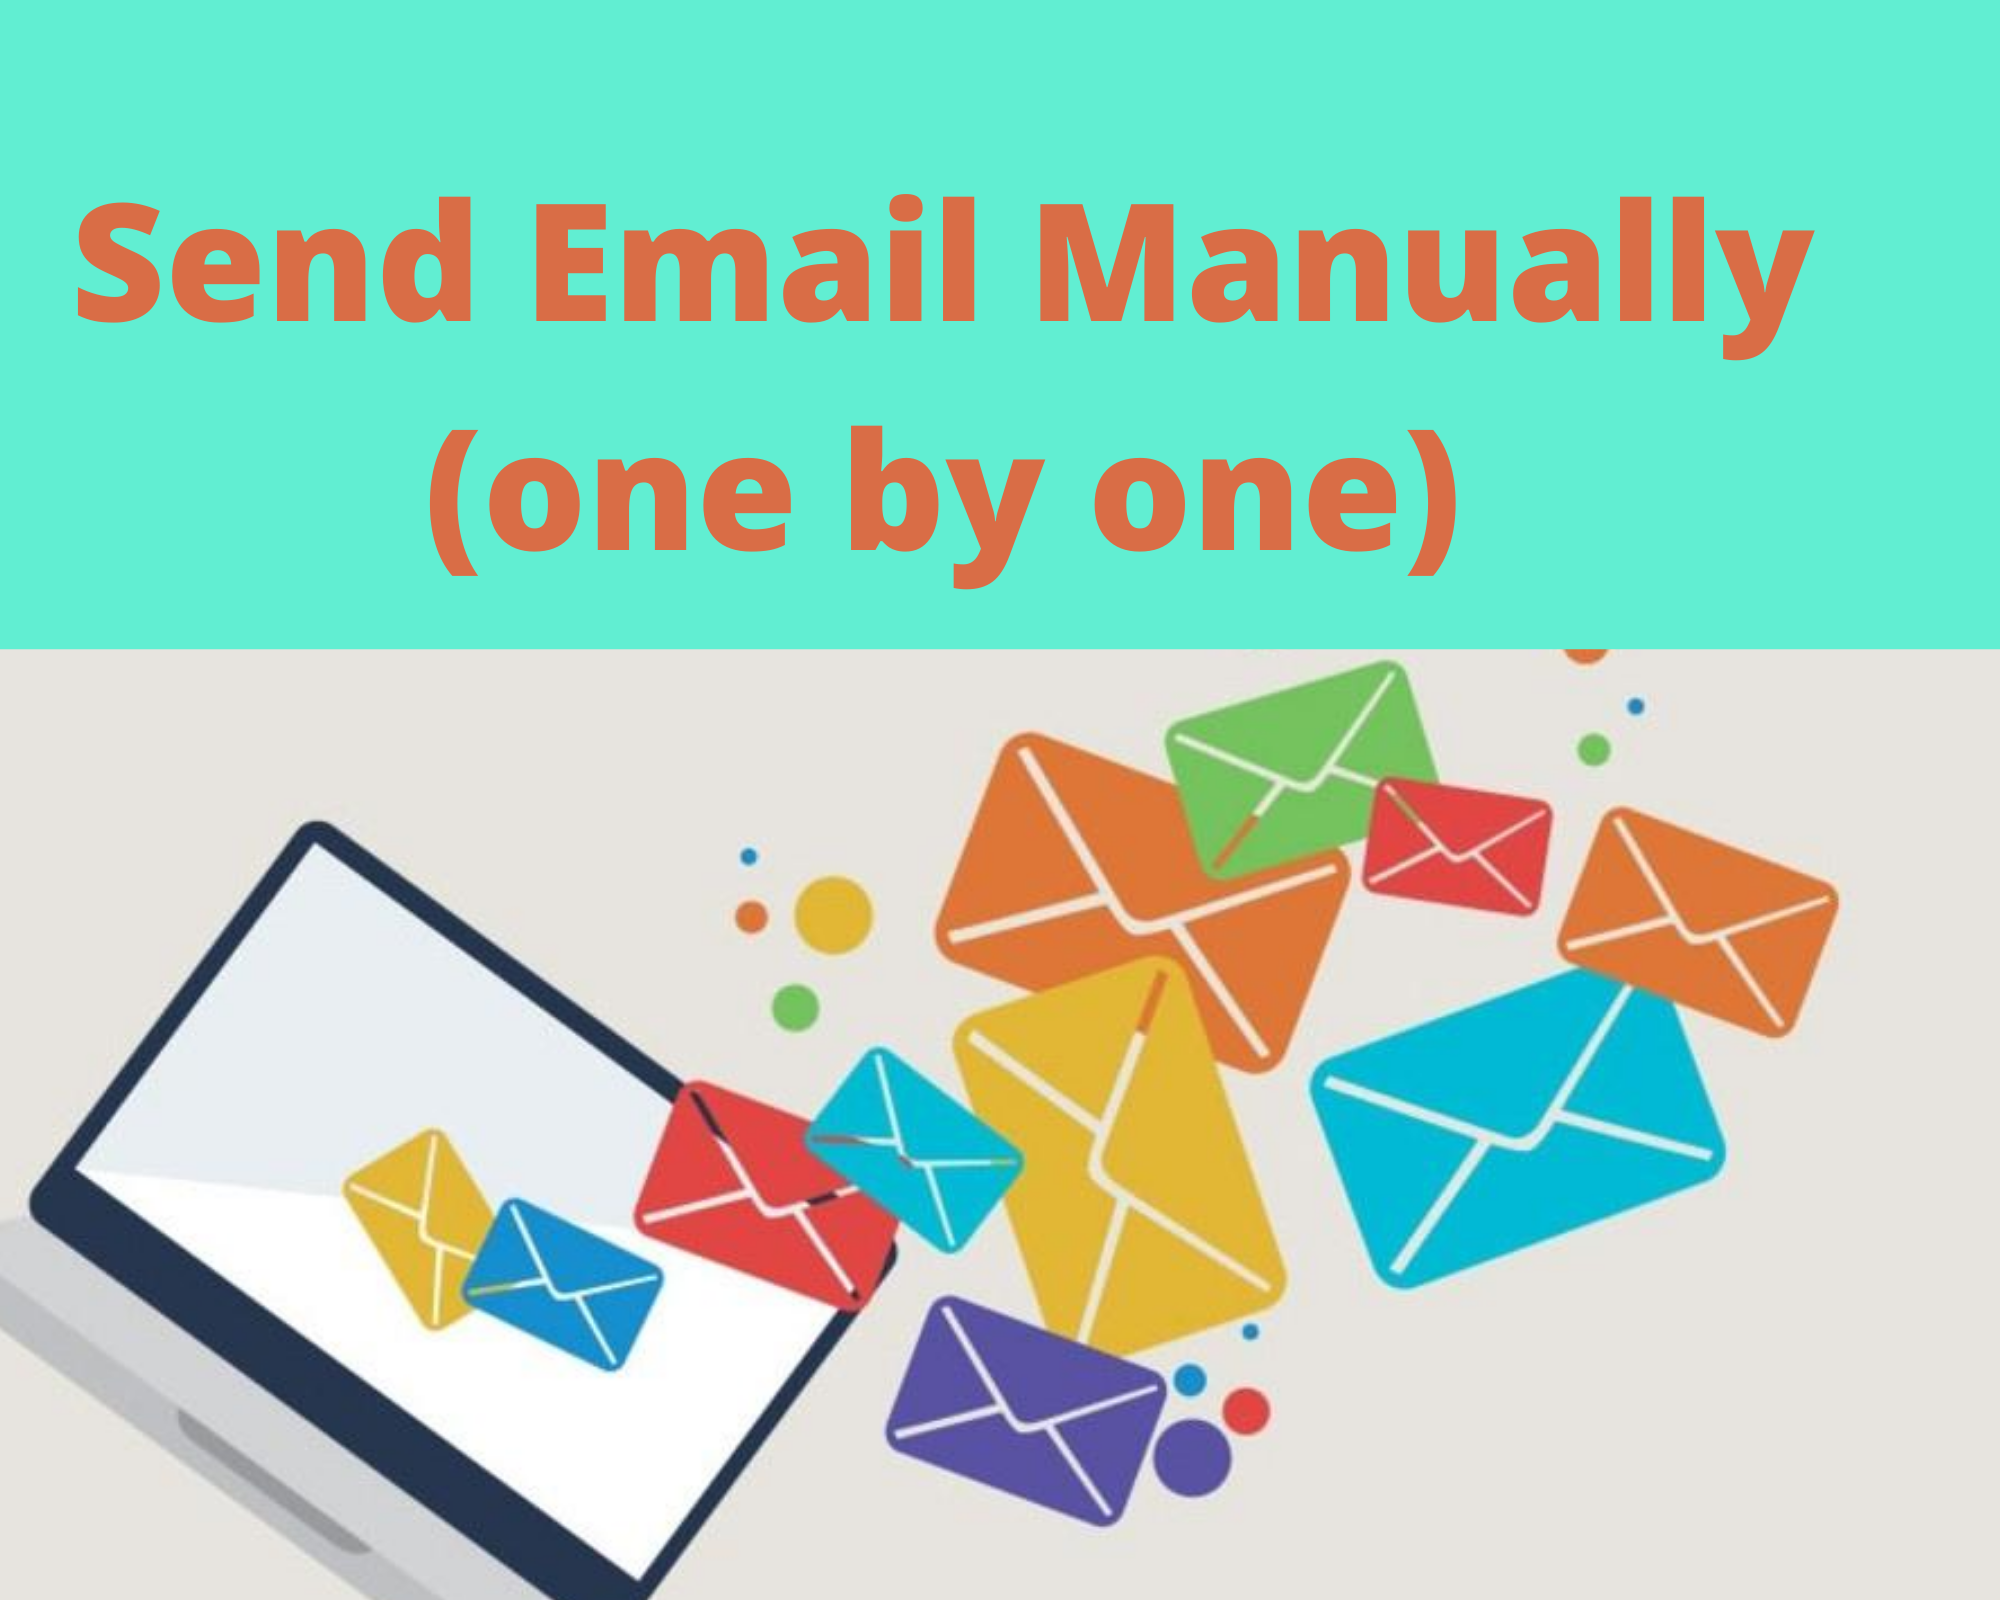 Send emails Manually 1 by 1 Email Marketing